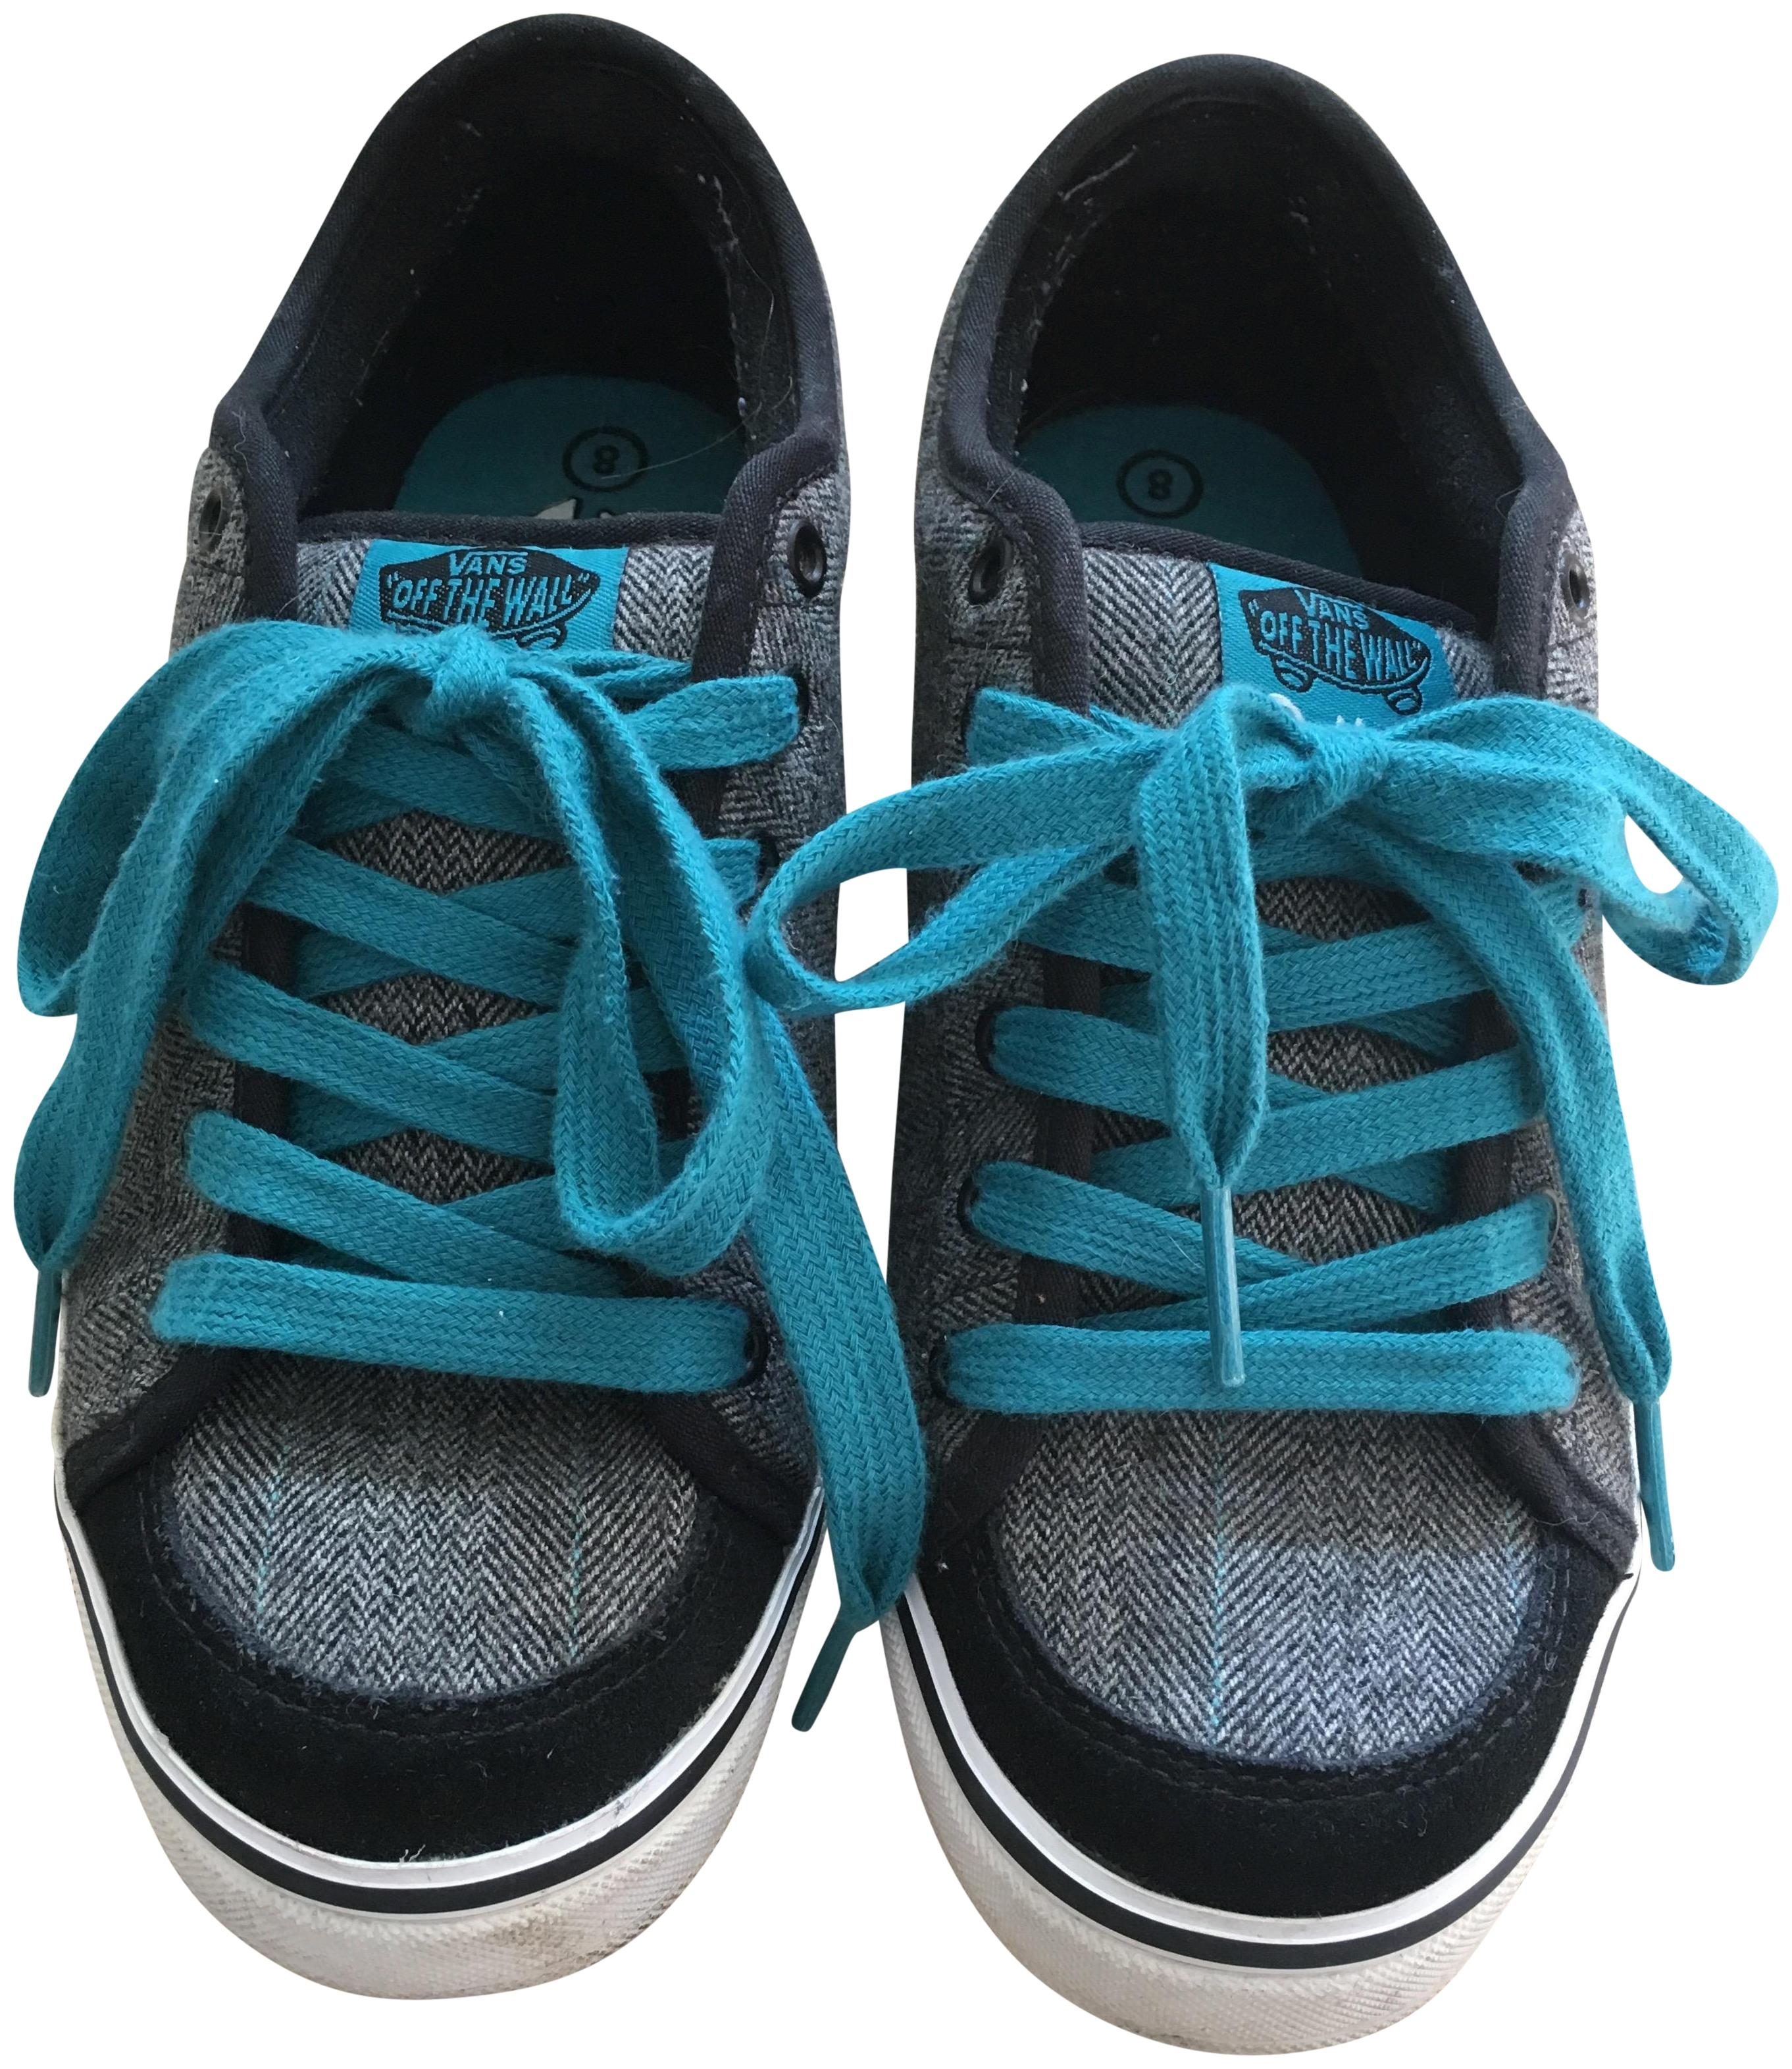 3694ce6e0a9e1f Womens black vans shoes up to off at tradesy jpg 831x960 Teal grey vans